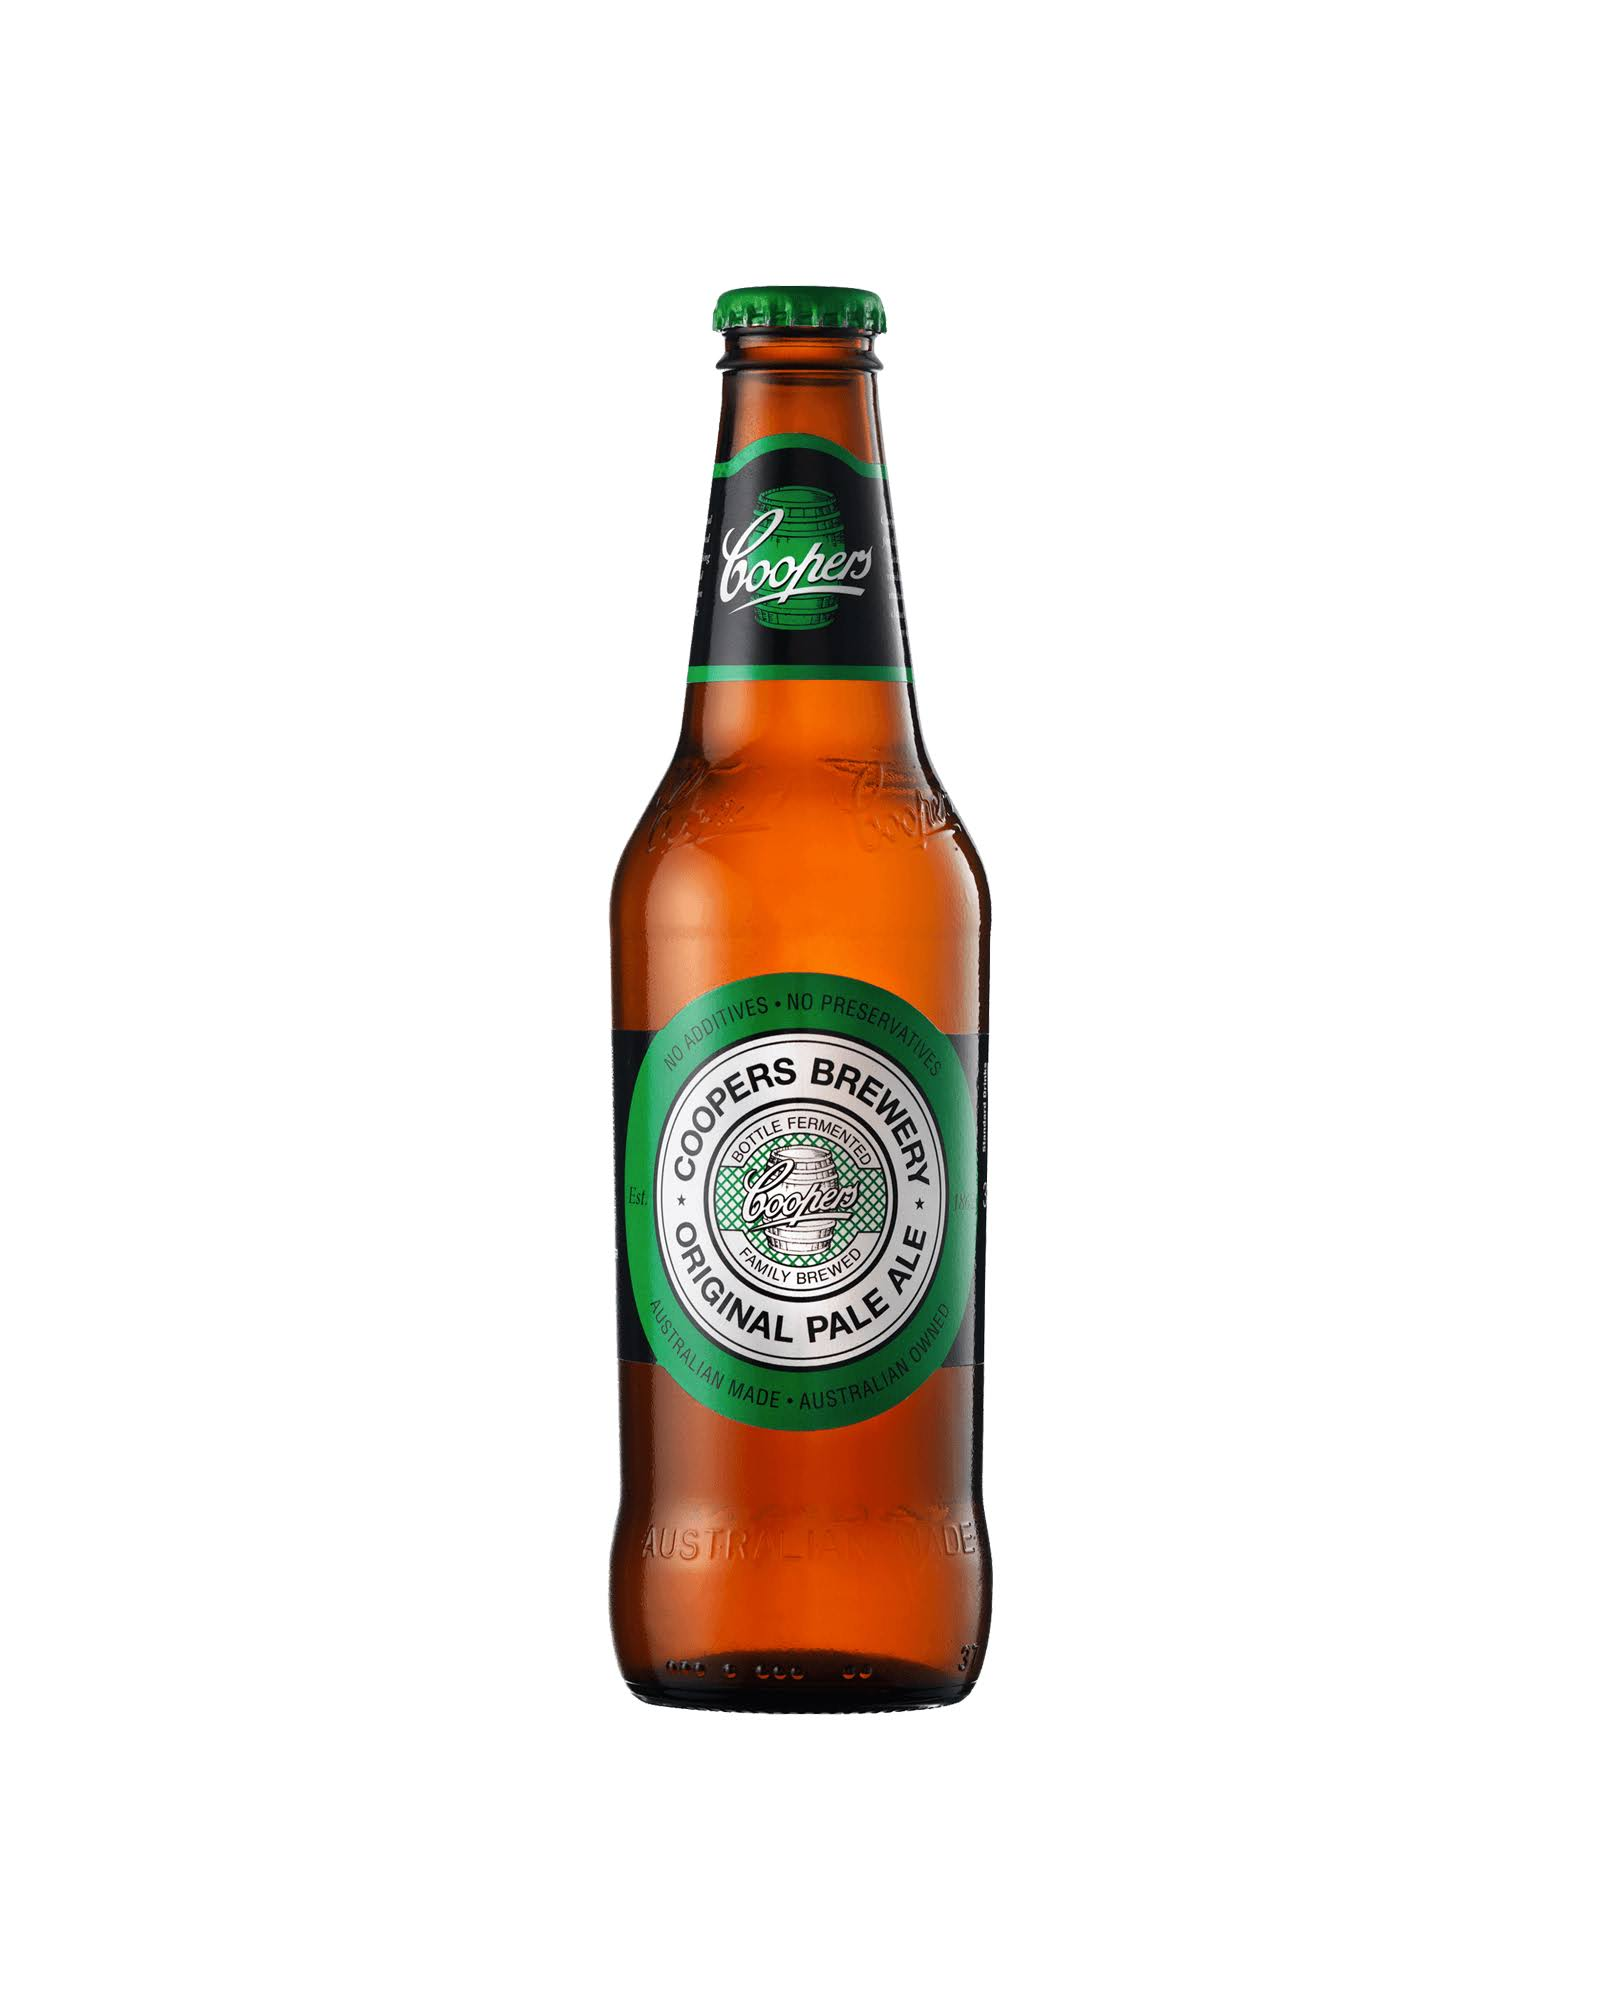 Coopers Brewery Original Ale - Pale, 375ml